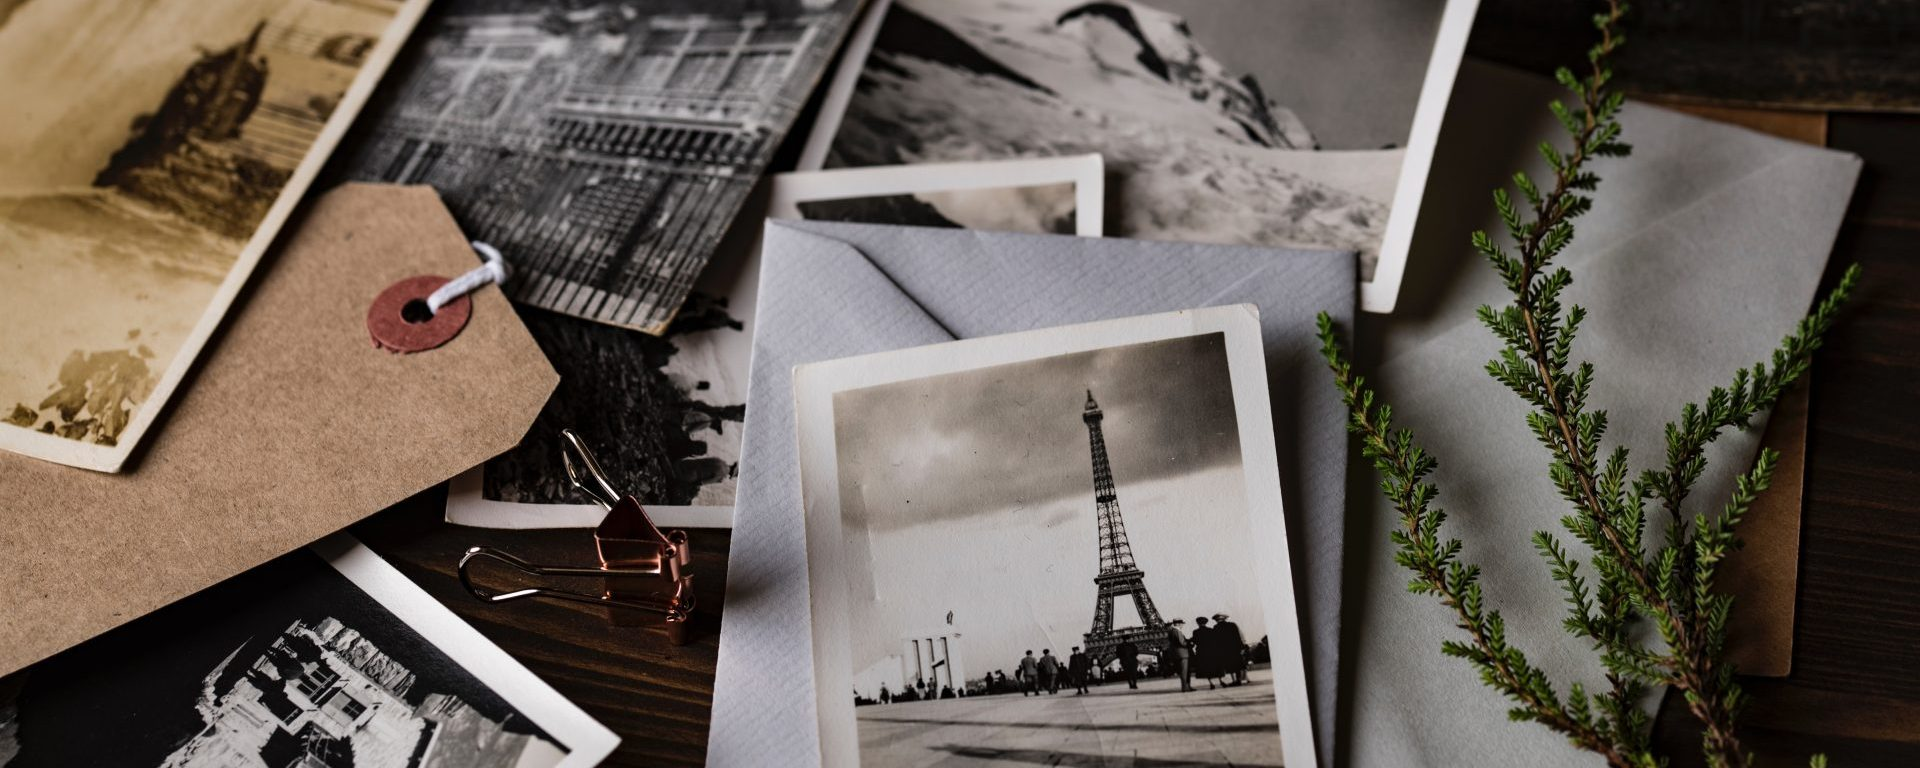 the bunch of photos of eiffel lower on the desk